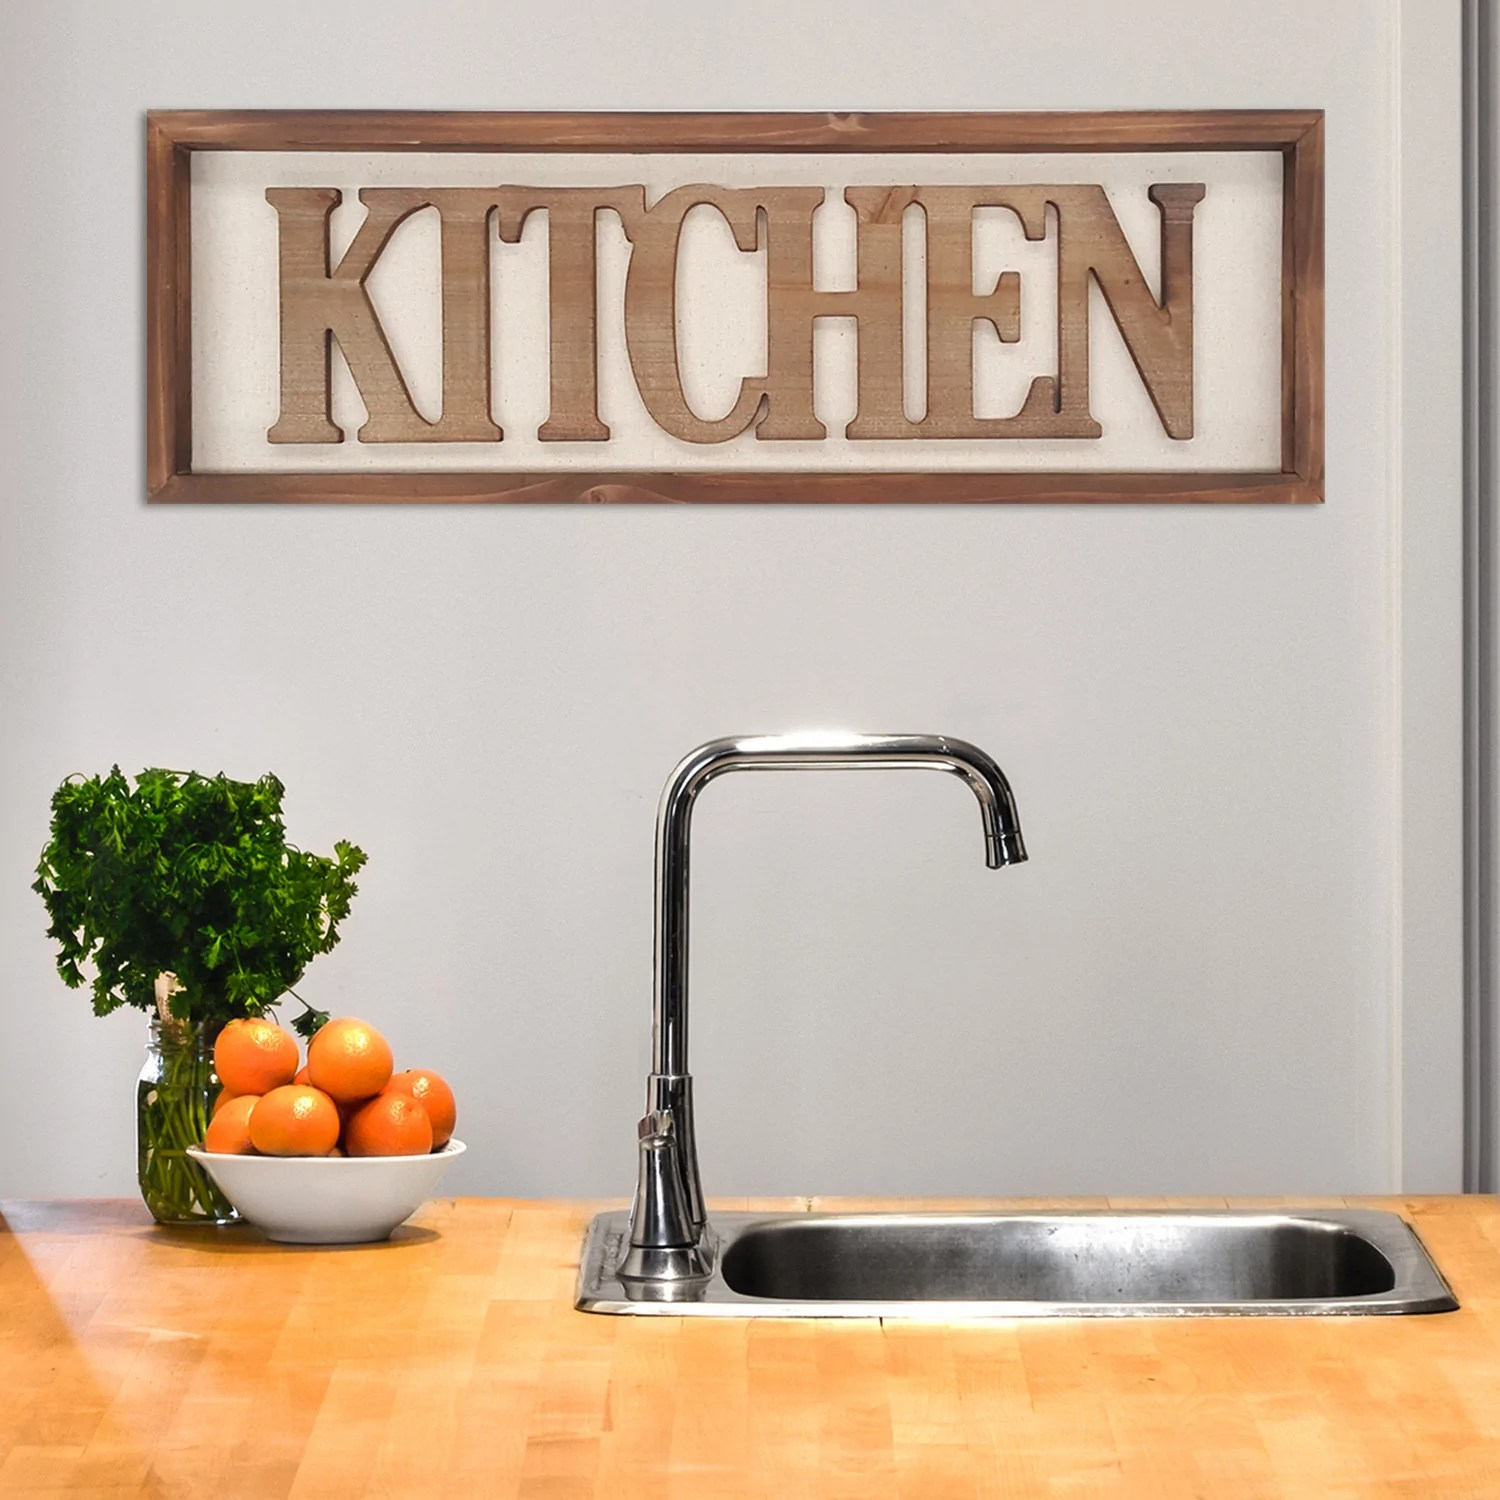 pictures for kitchen wall trash can pull out art stratton home decor